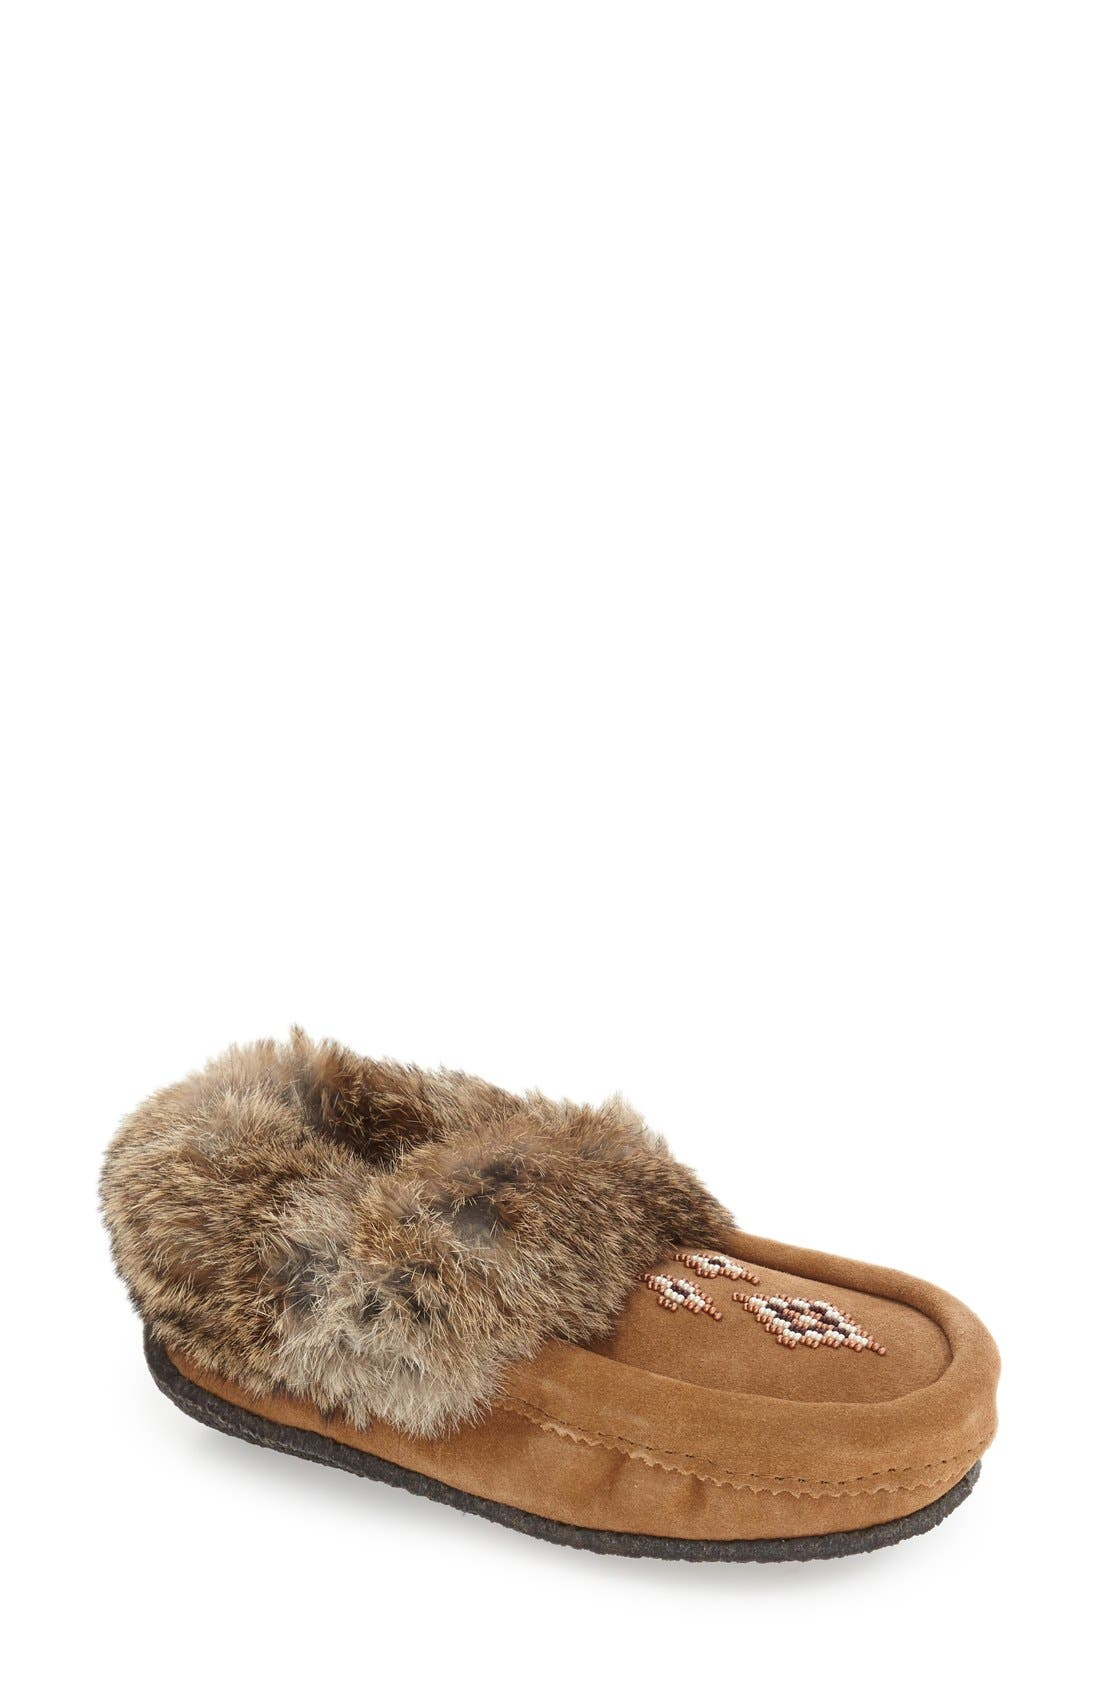 Genuine Shearling and Rabbit Fur Mukluk Slipper,                             Main thumbnail 1, color,                             OAK RABBIT FUR SUEDE